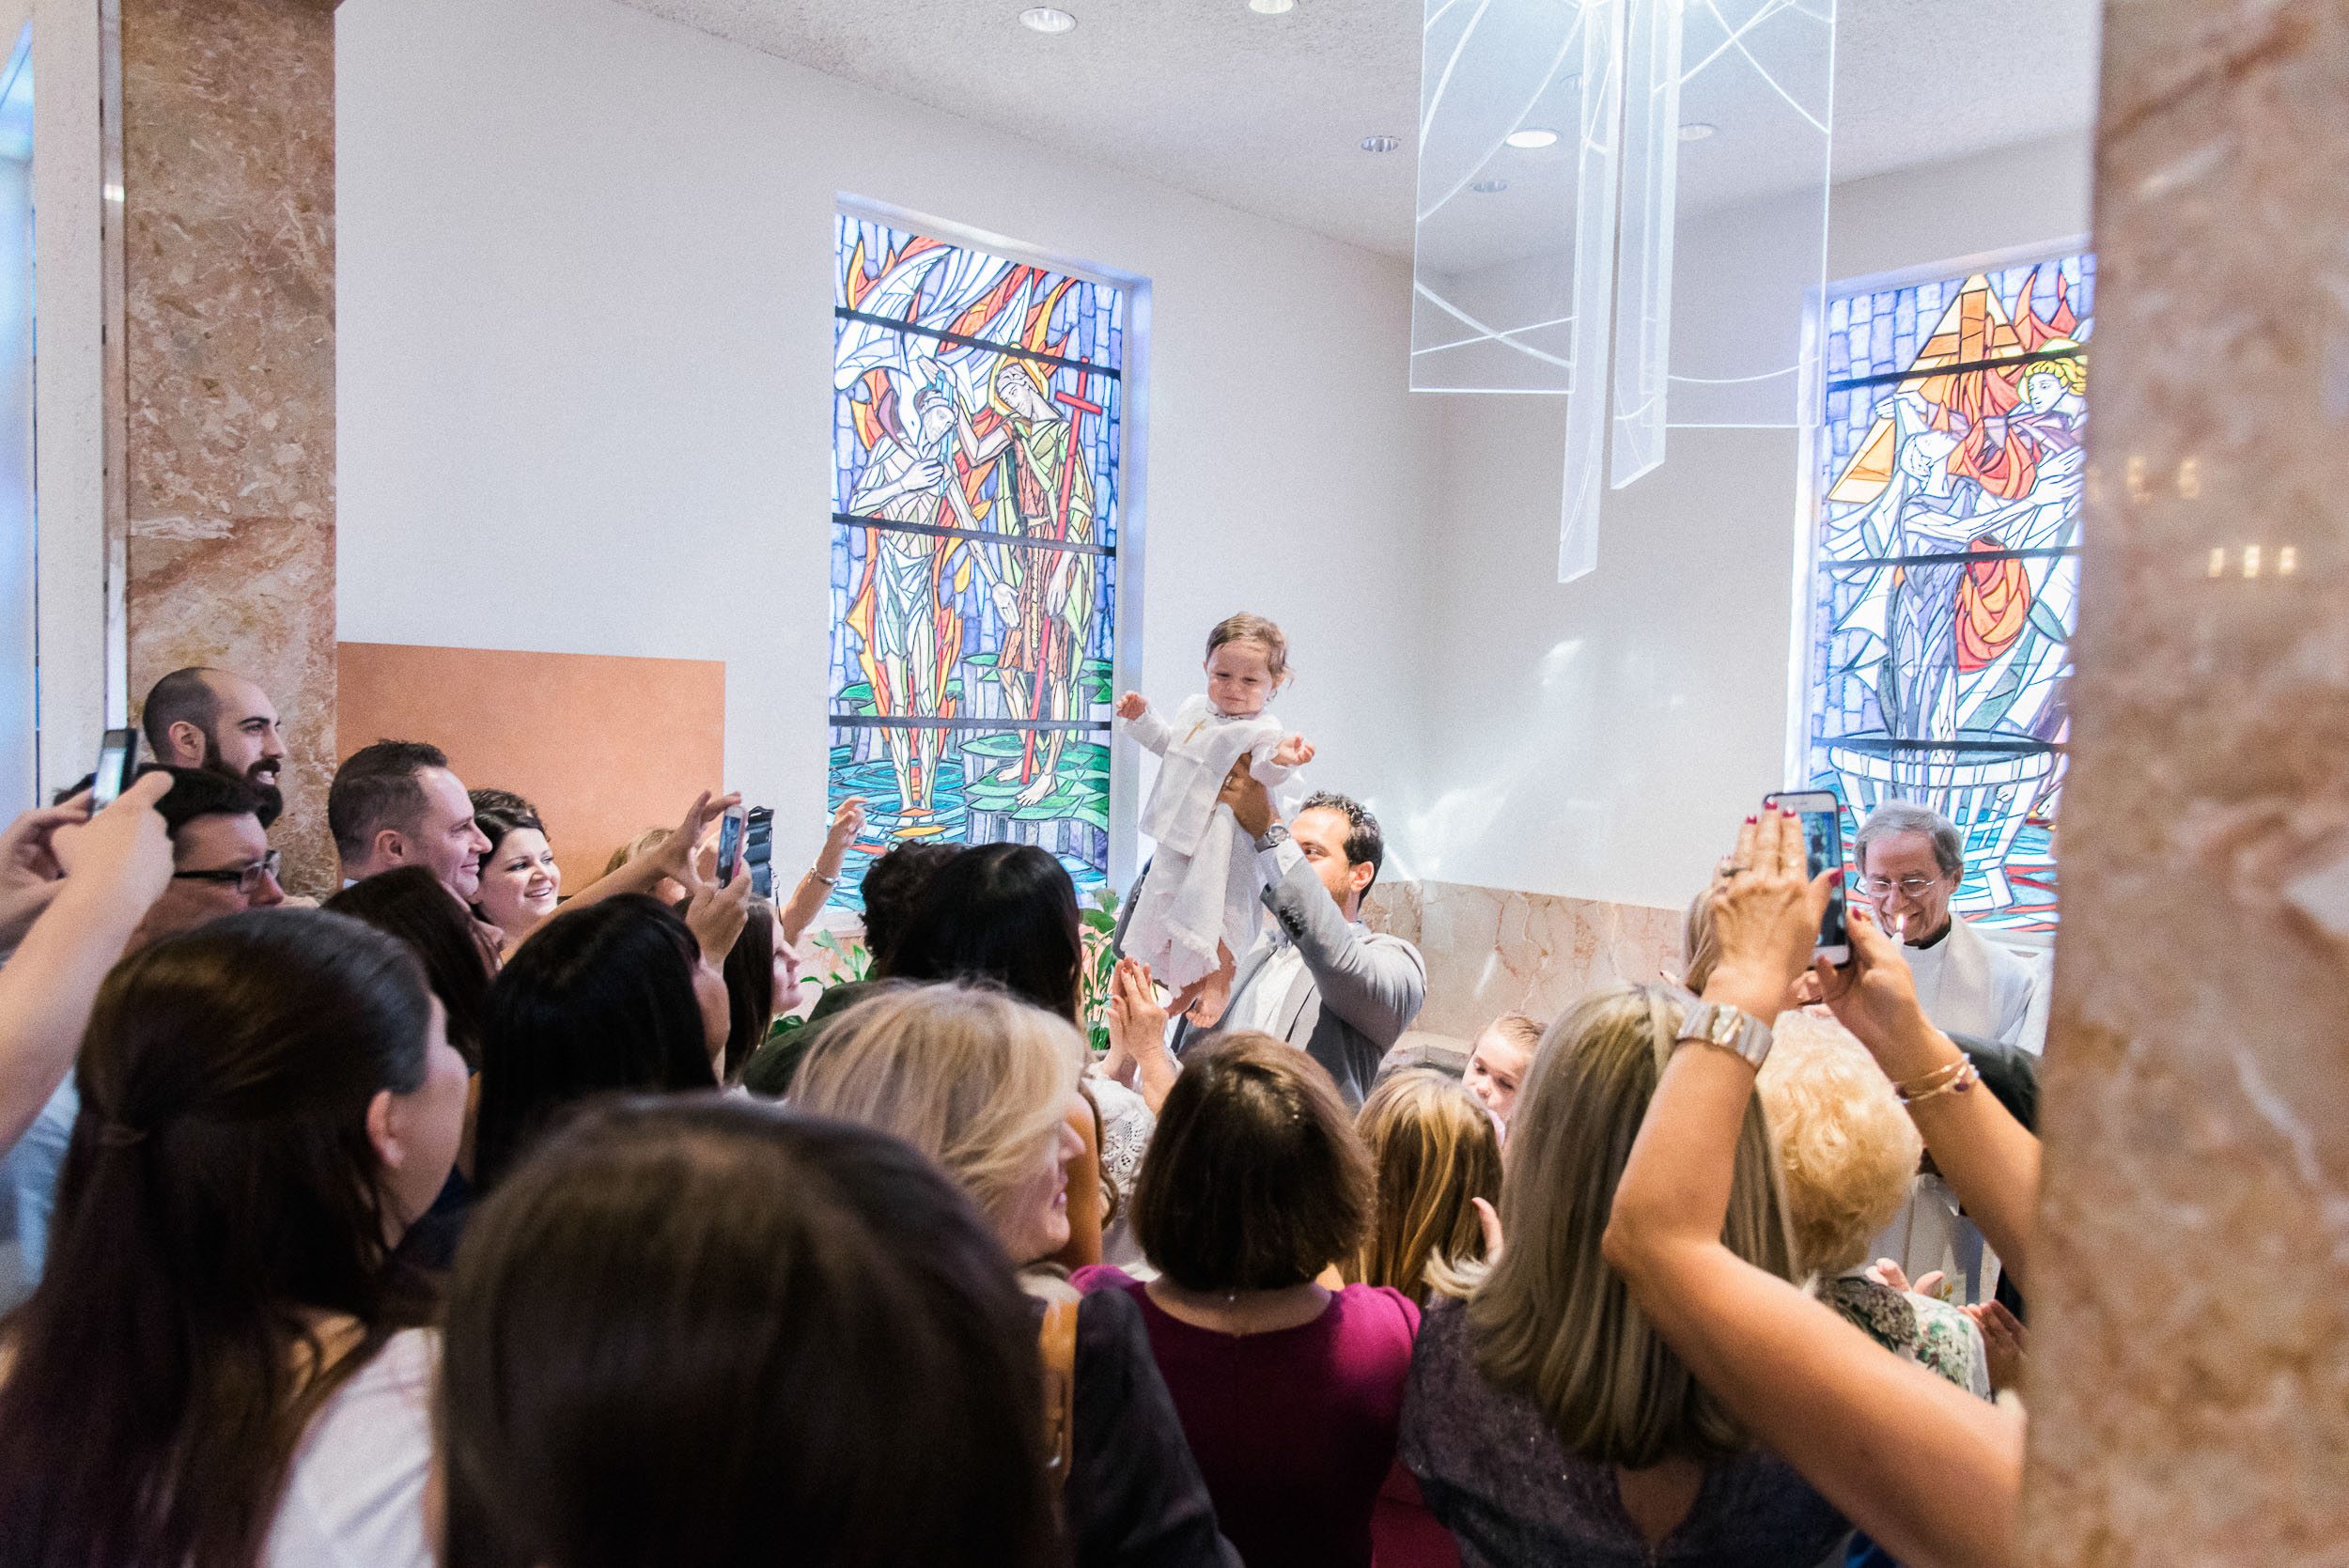 Bryan-Miraflor-Photography-Our-Lady-of-Grace-Neave-Baptism-20161009-0147.jpg